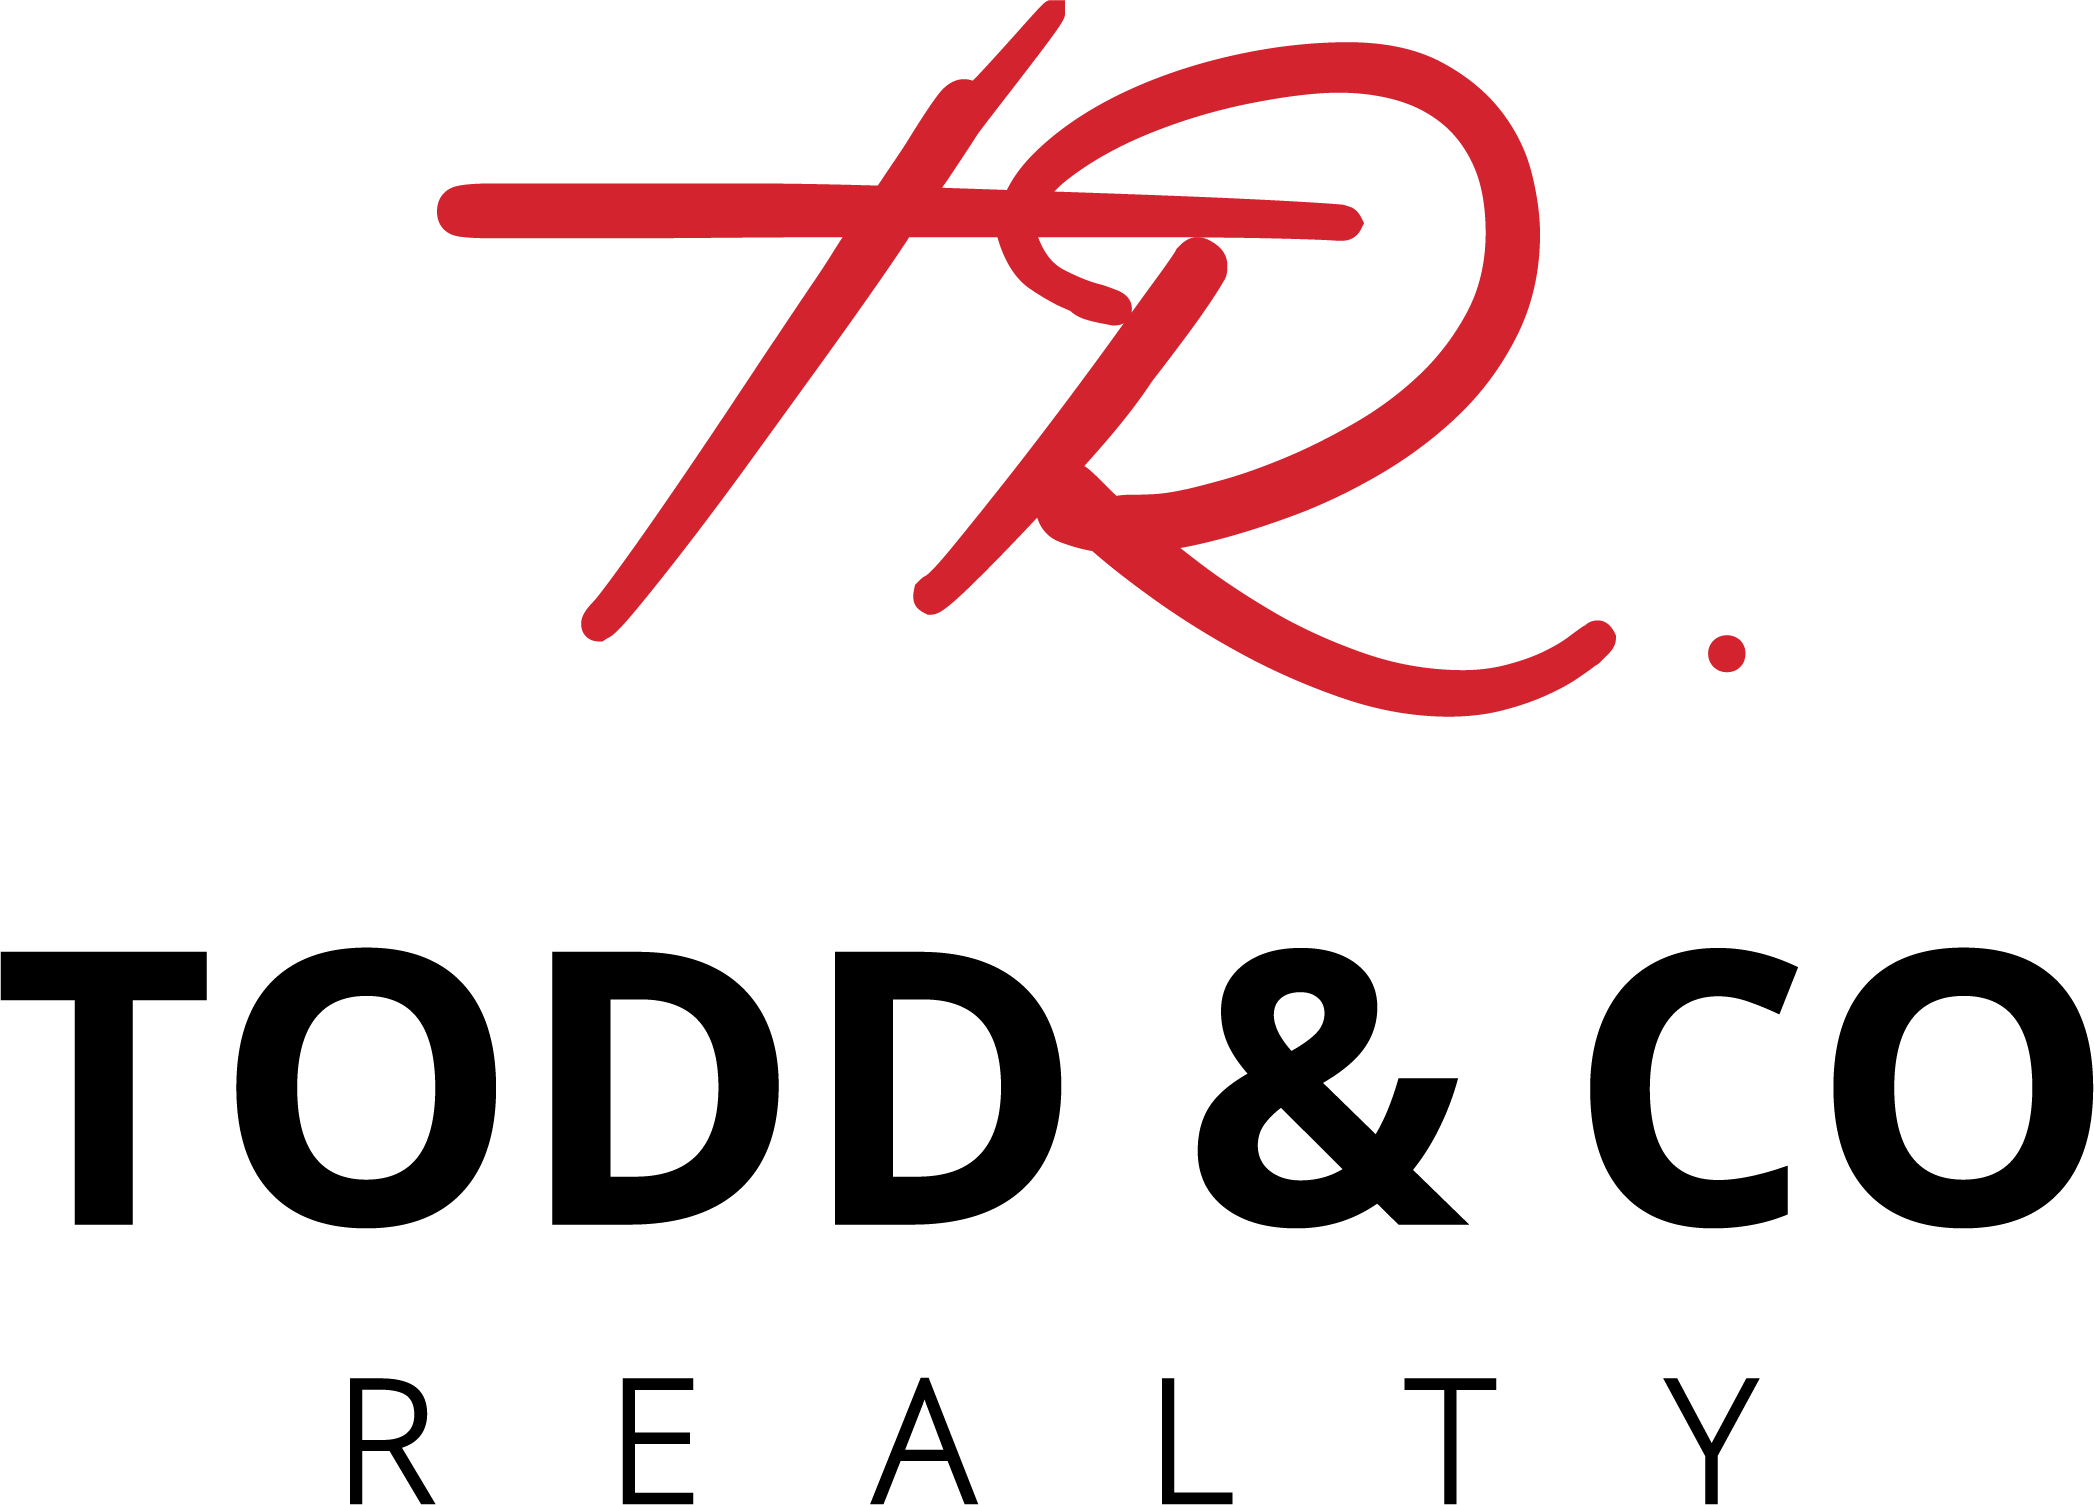 https://www.wearelocal.co.nz/image/catalog/Todd Co Realty/Todd&CoRealty_Logo_Primary.png